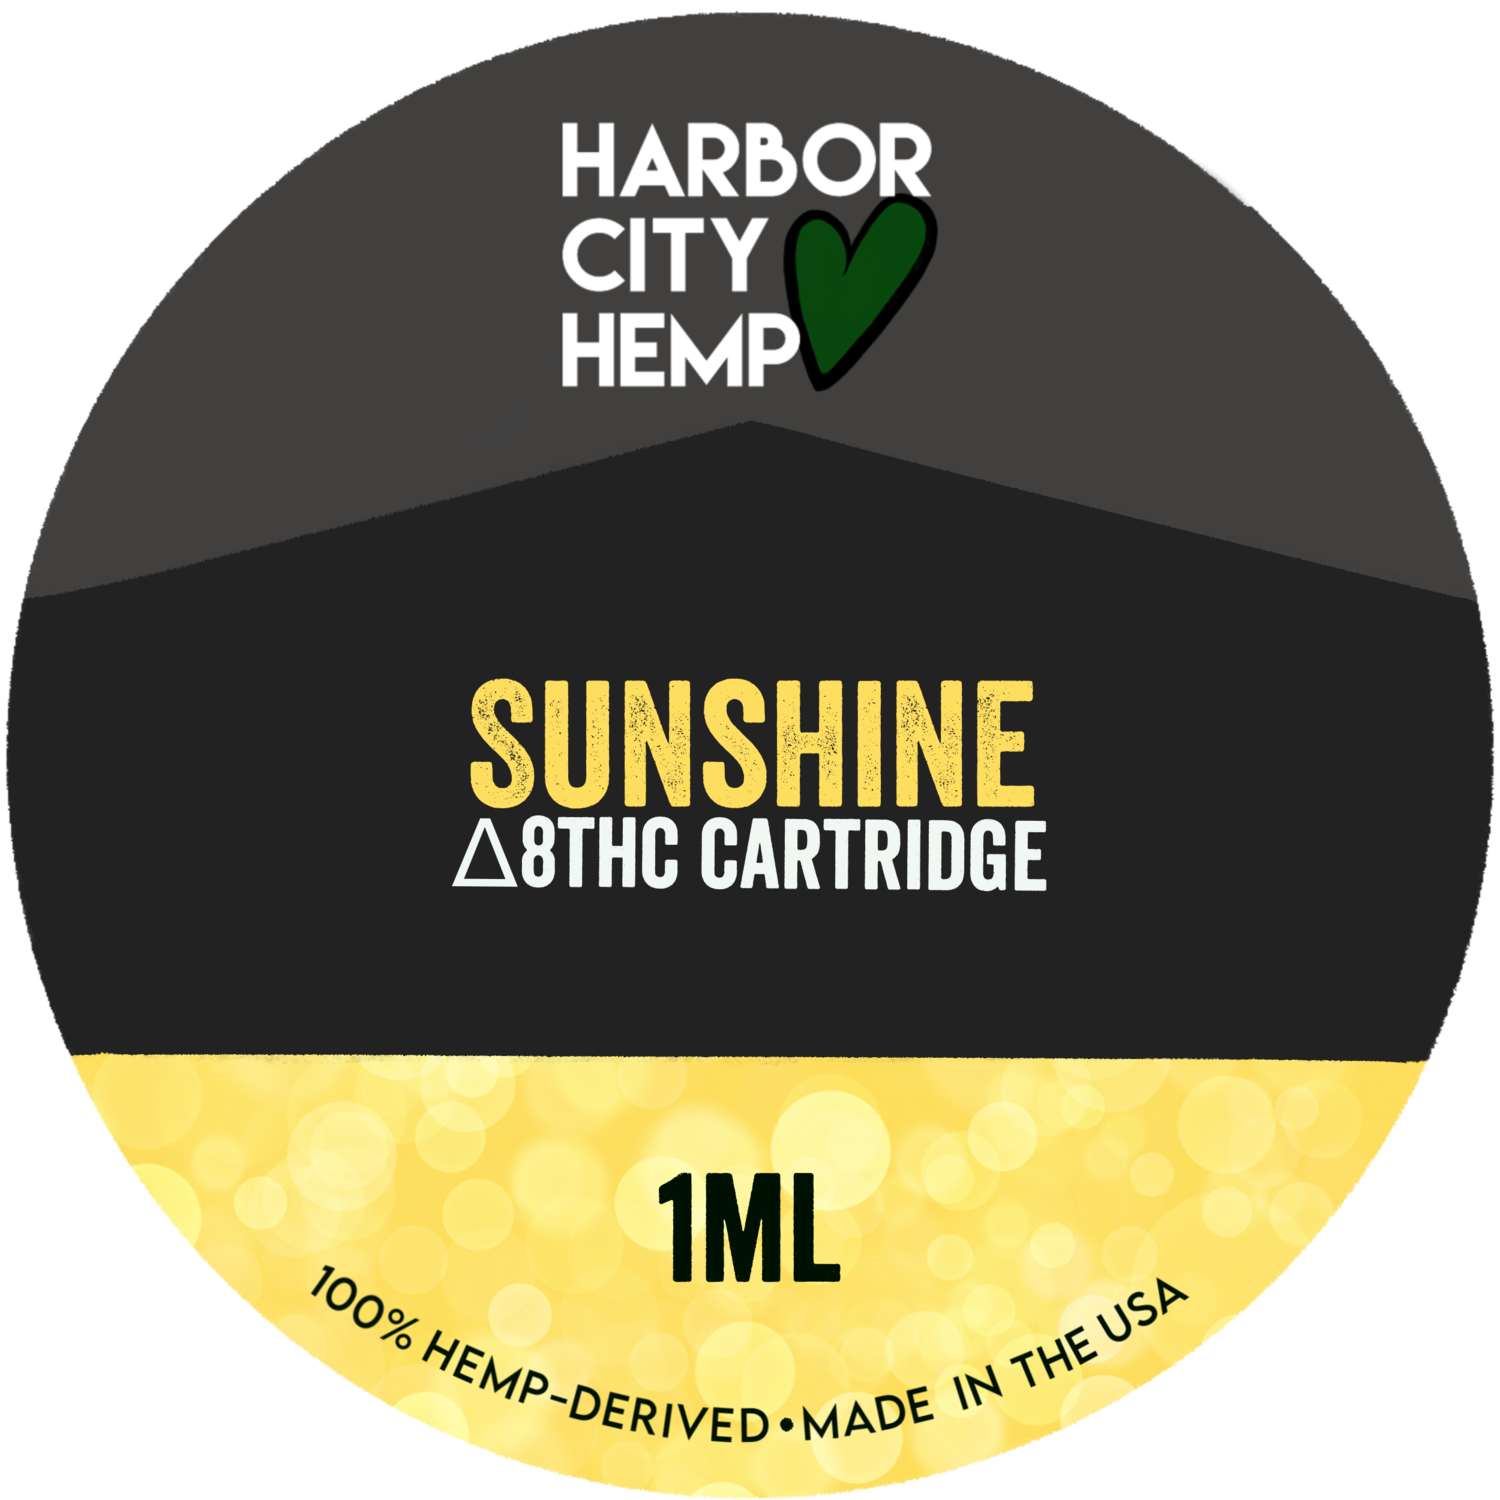 Harbor City Hemp Delta 8 vape 1ml Sunshine